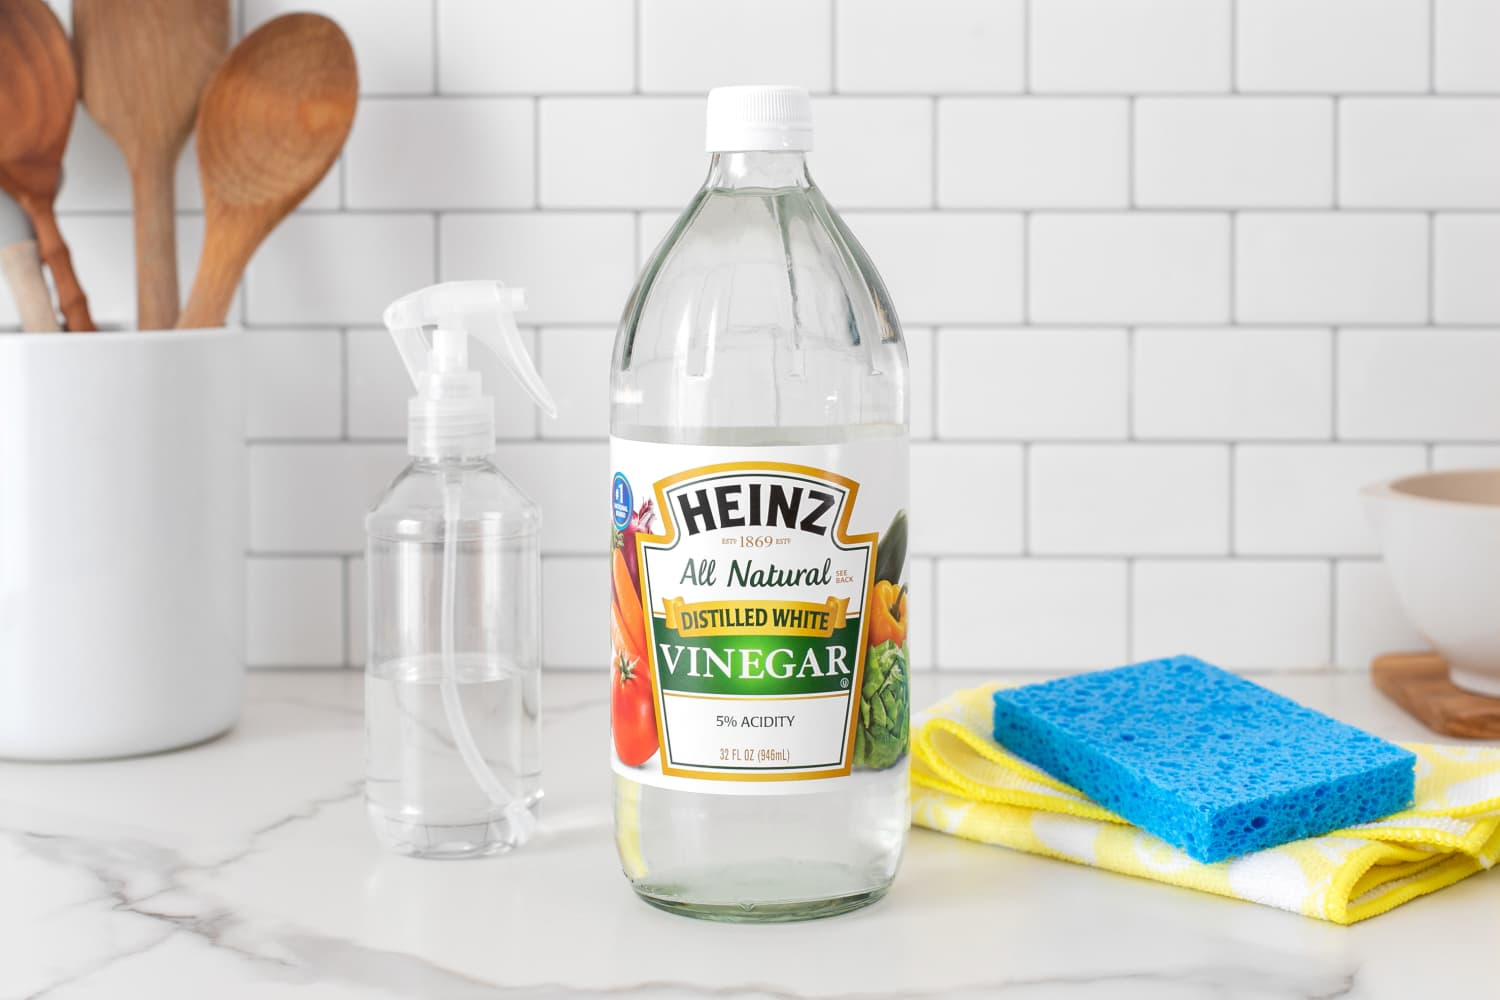 The Very First Thing You Should Do with a New Bottle of Vinegar